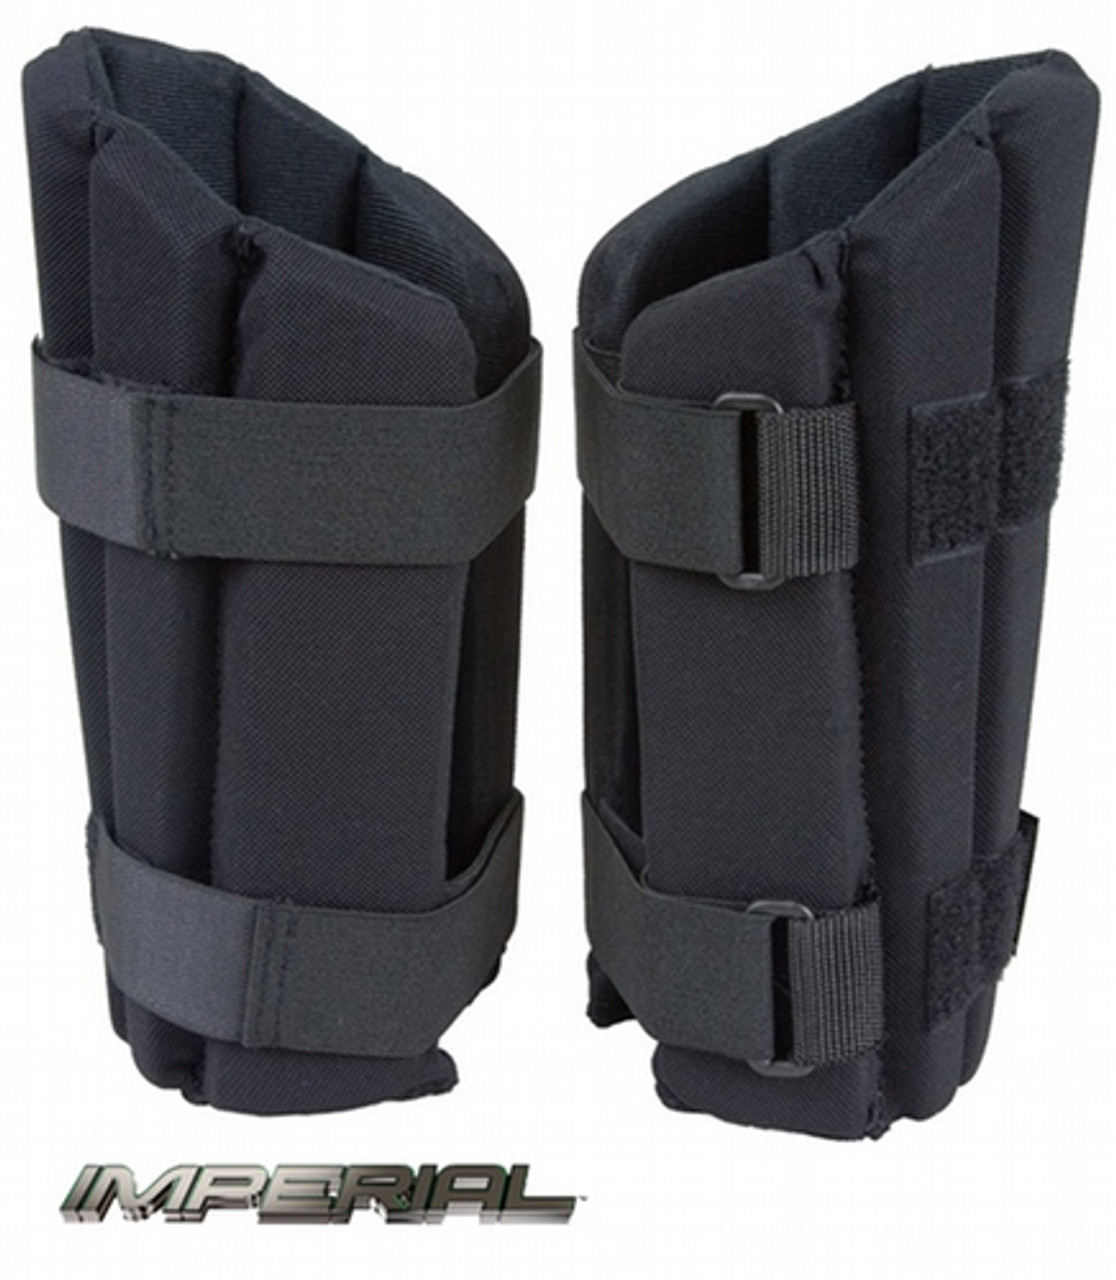 Damascus FP10, Police Riot Gear,  Imperial Forearm and Elbow Protection, Two adjustable straps, Forearm protection from wrist to elbow, hard shell plastic inserts